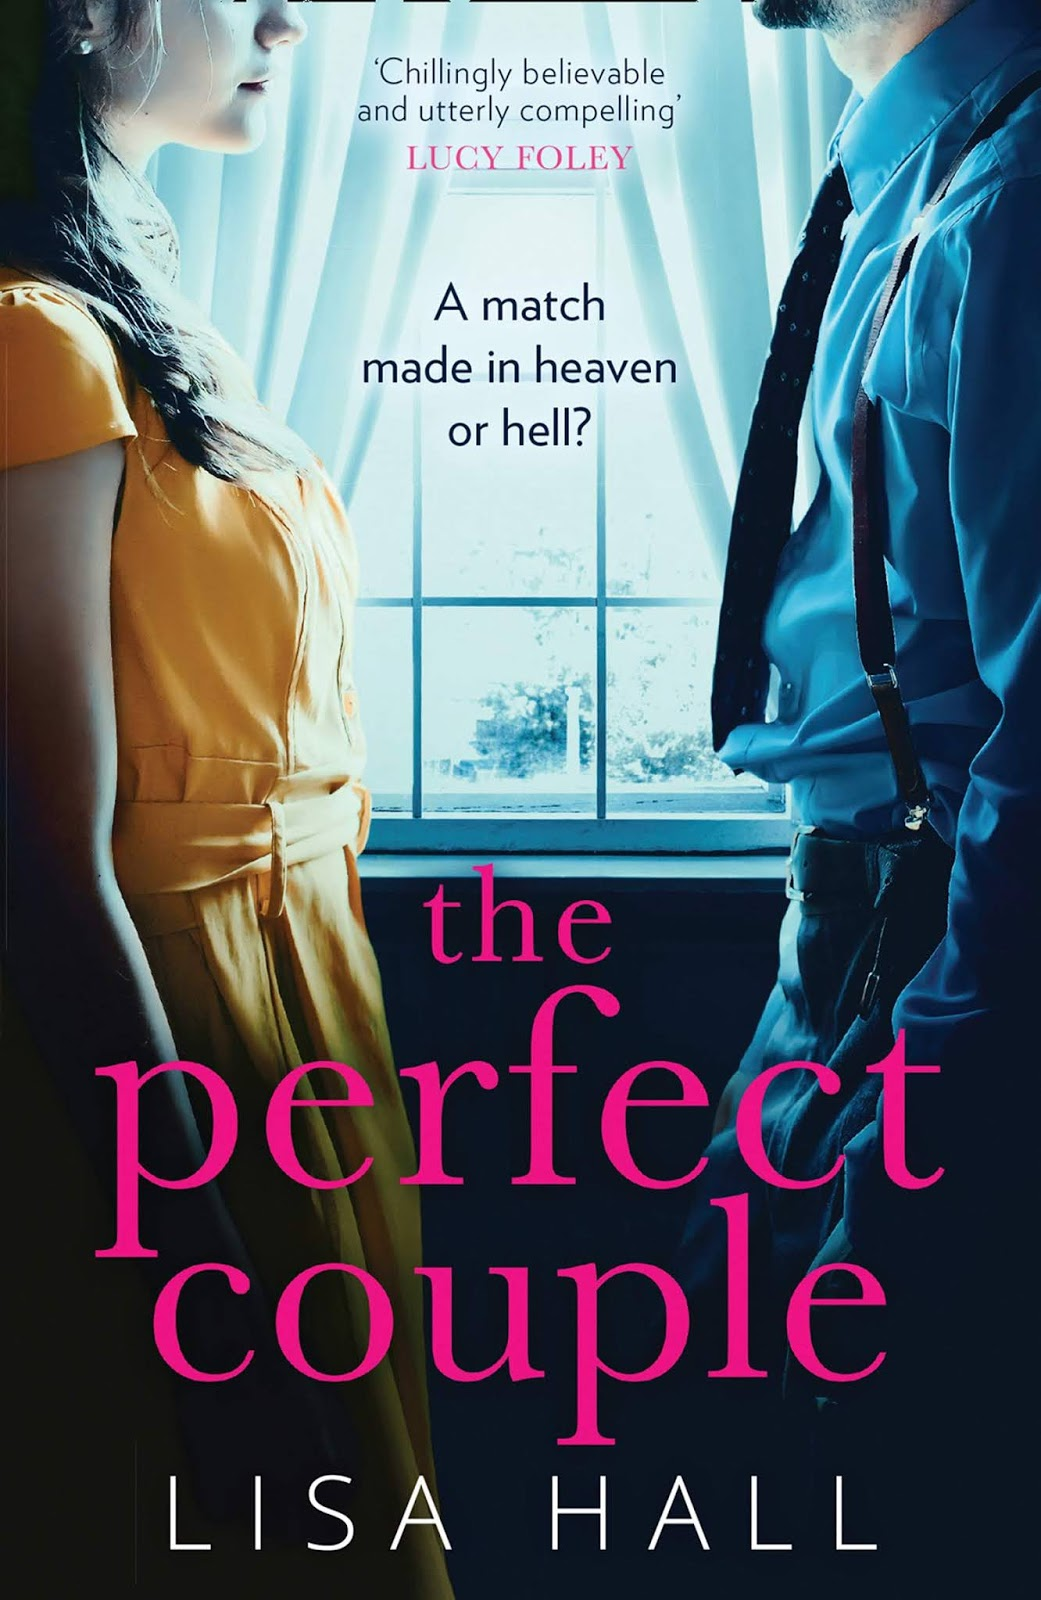 The Perfect Couple by Lisa Hall book cover